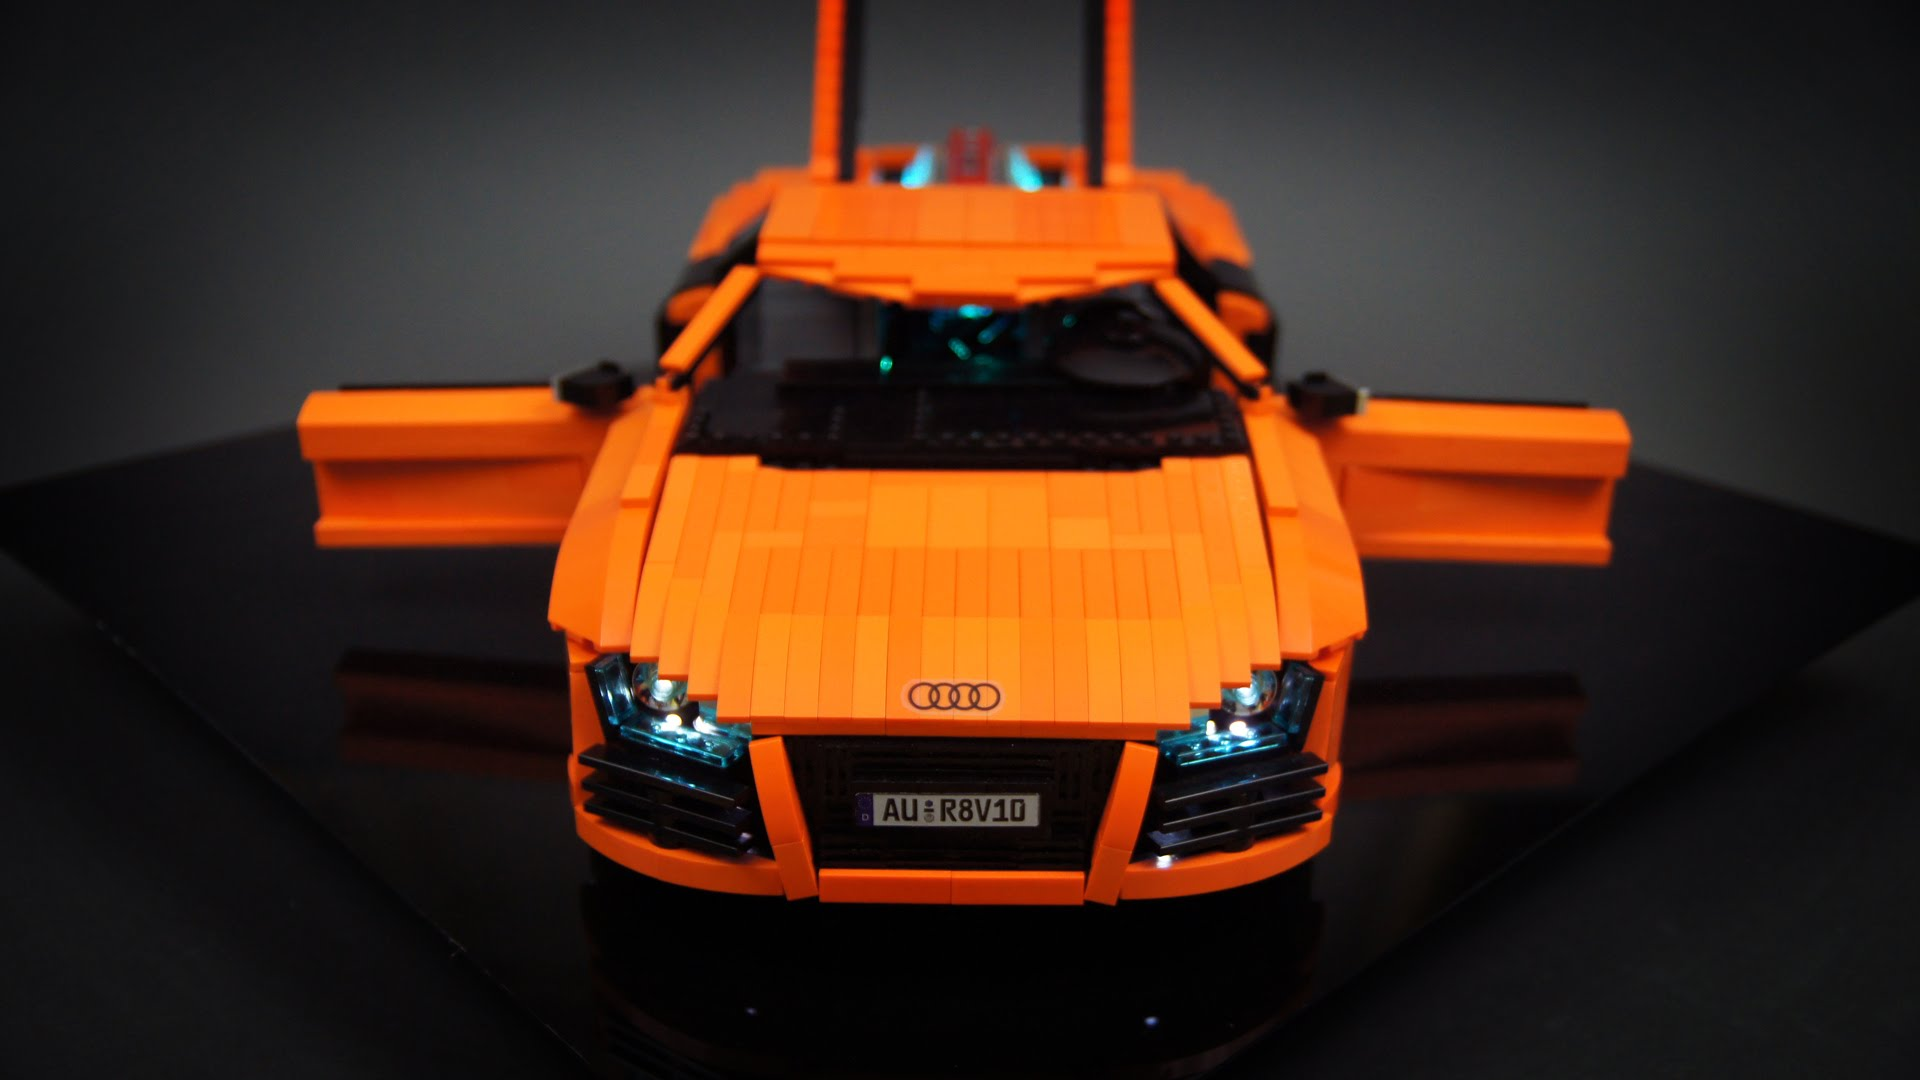 Video Of The Day Lego Technic Rc Audi R8 V10